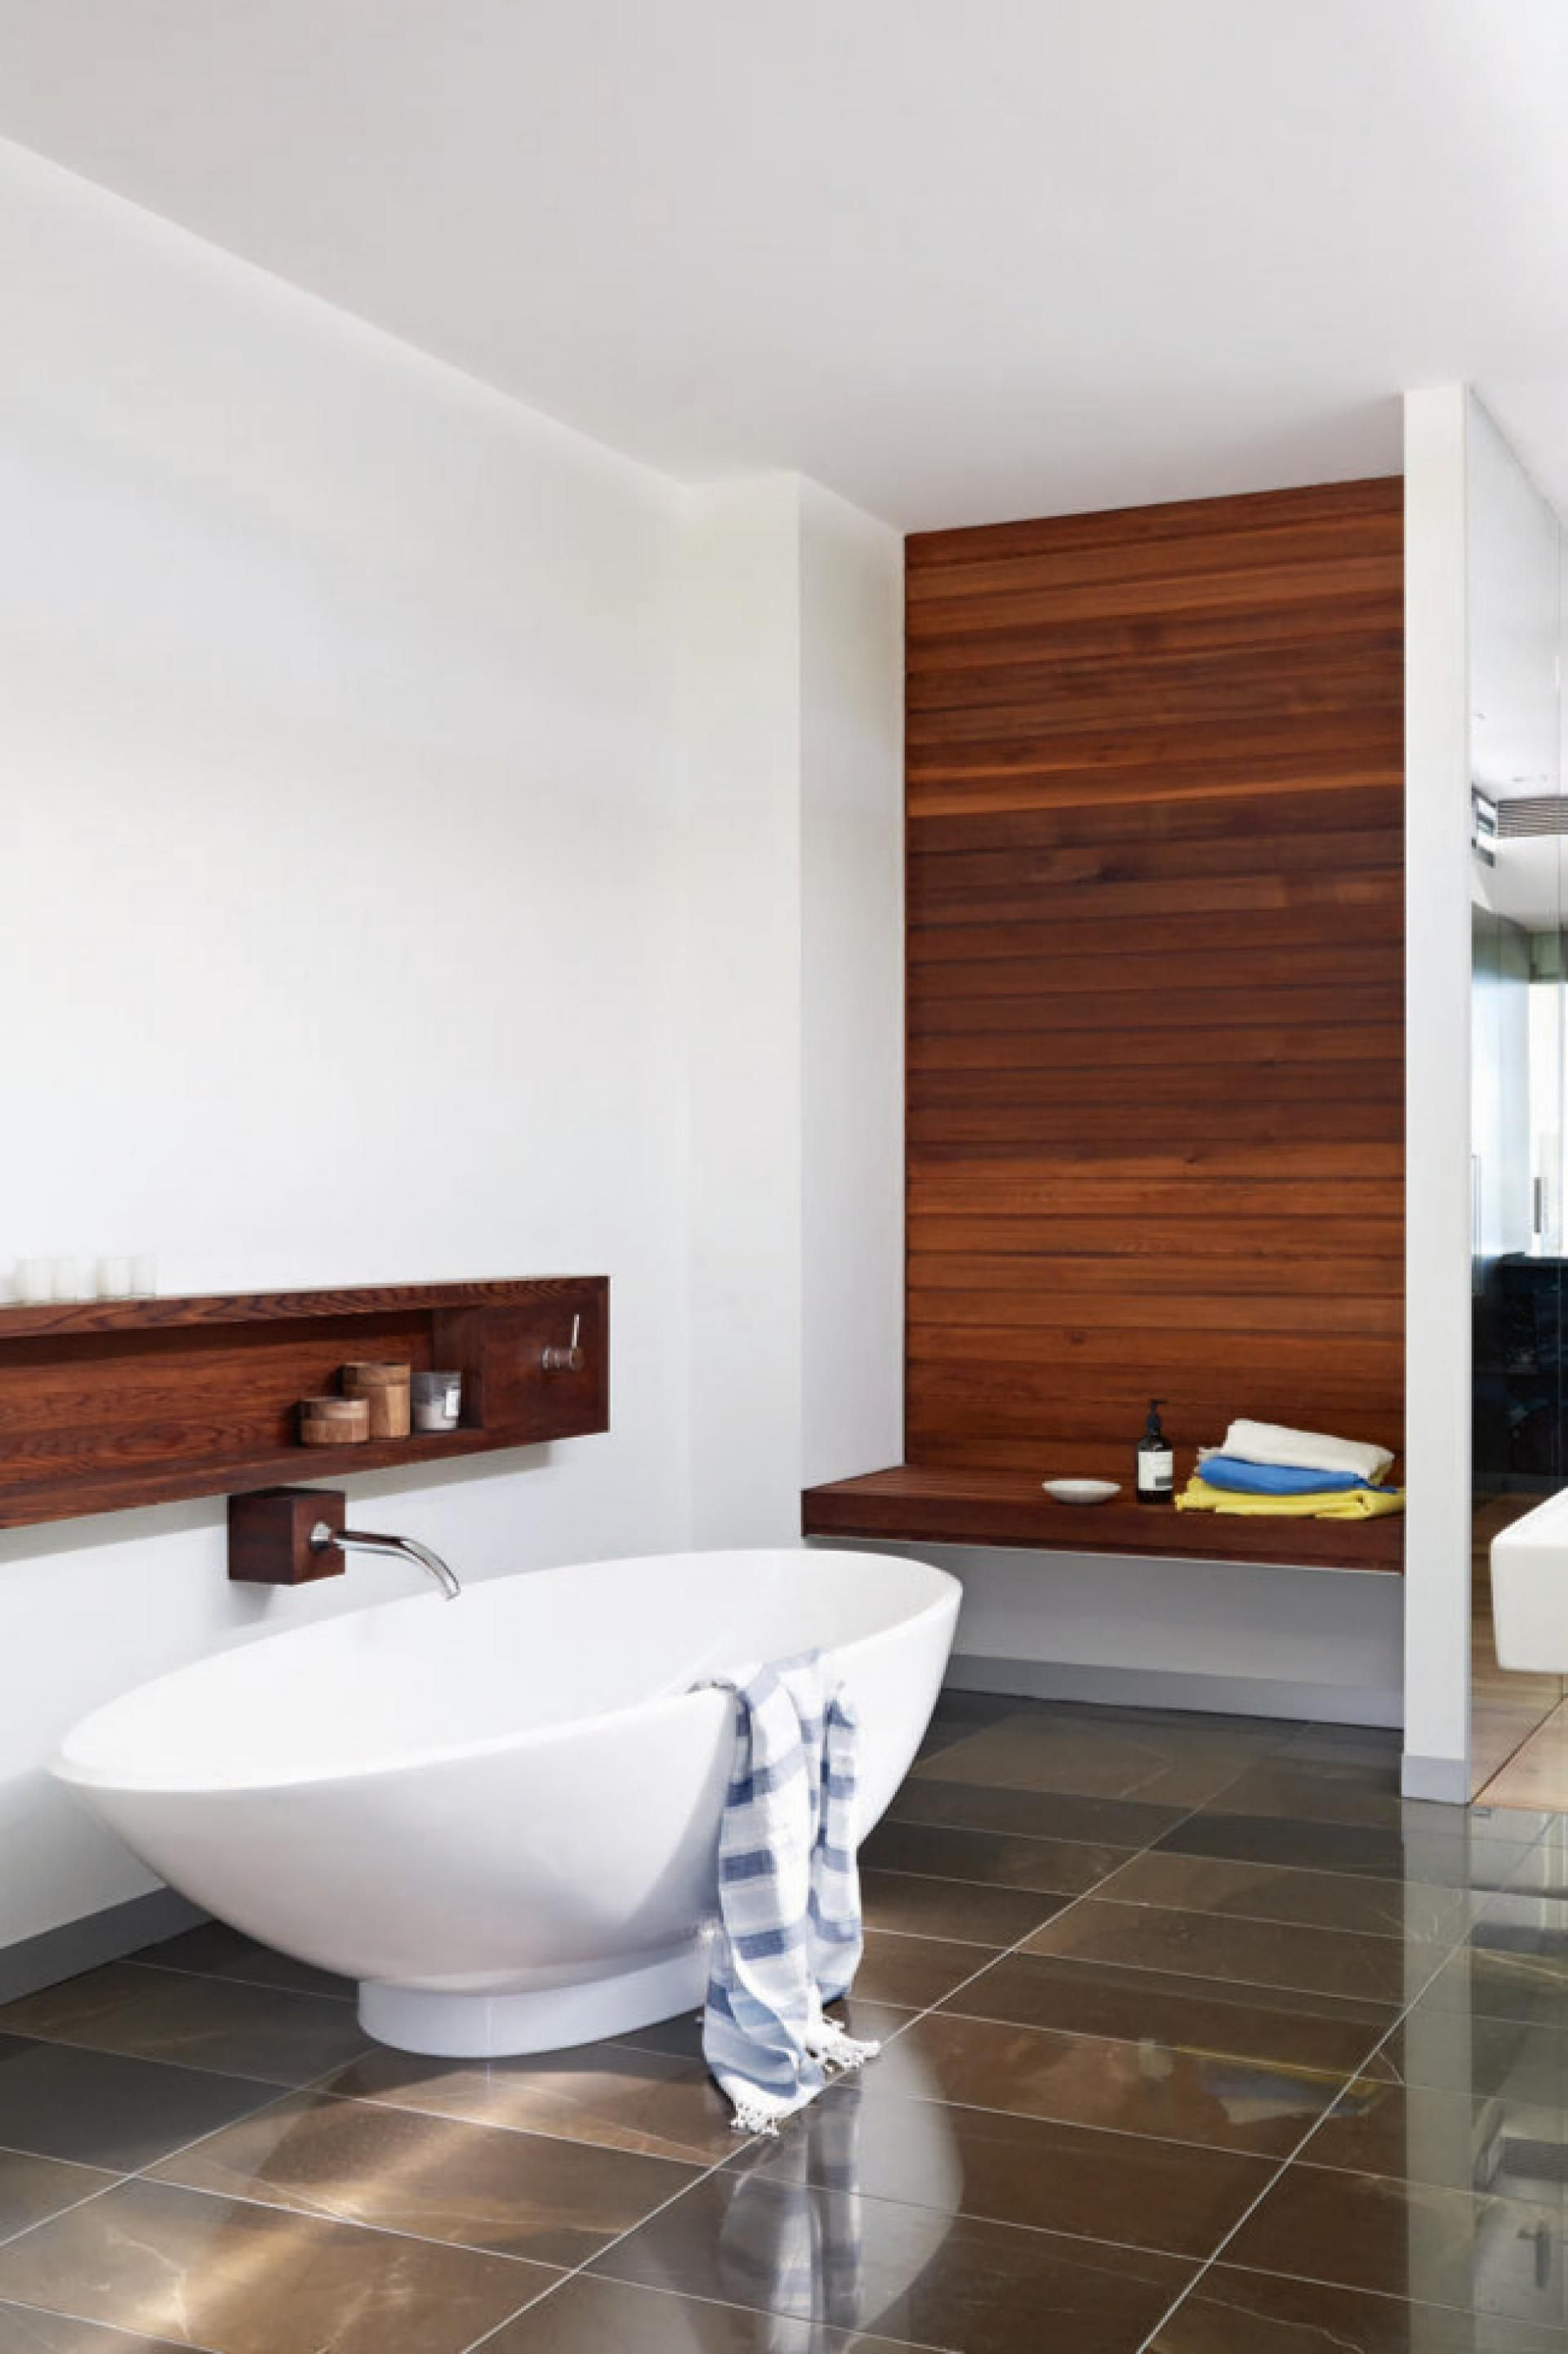 Timber Cladding Brings An Earthy Warmth To This Space Photography By Lucas Allen Bathrooms